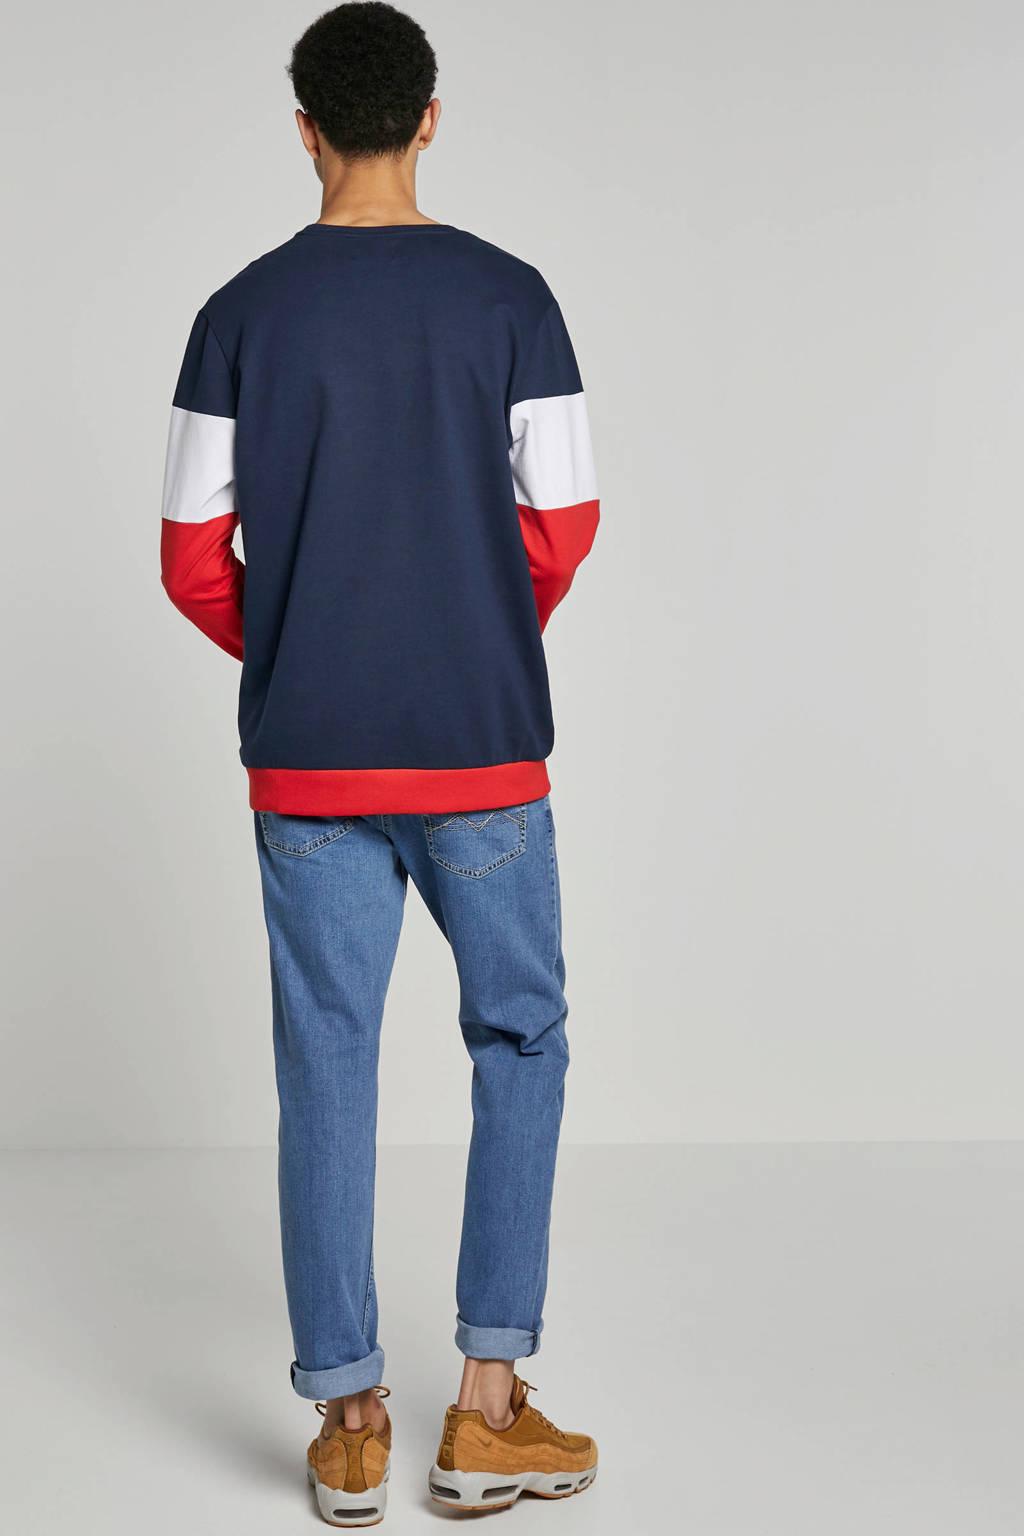 Cars sweater, Rood/blauw/wit